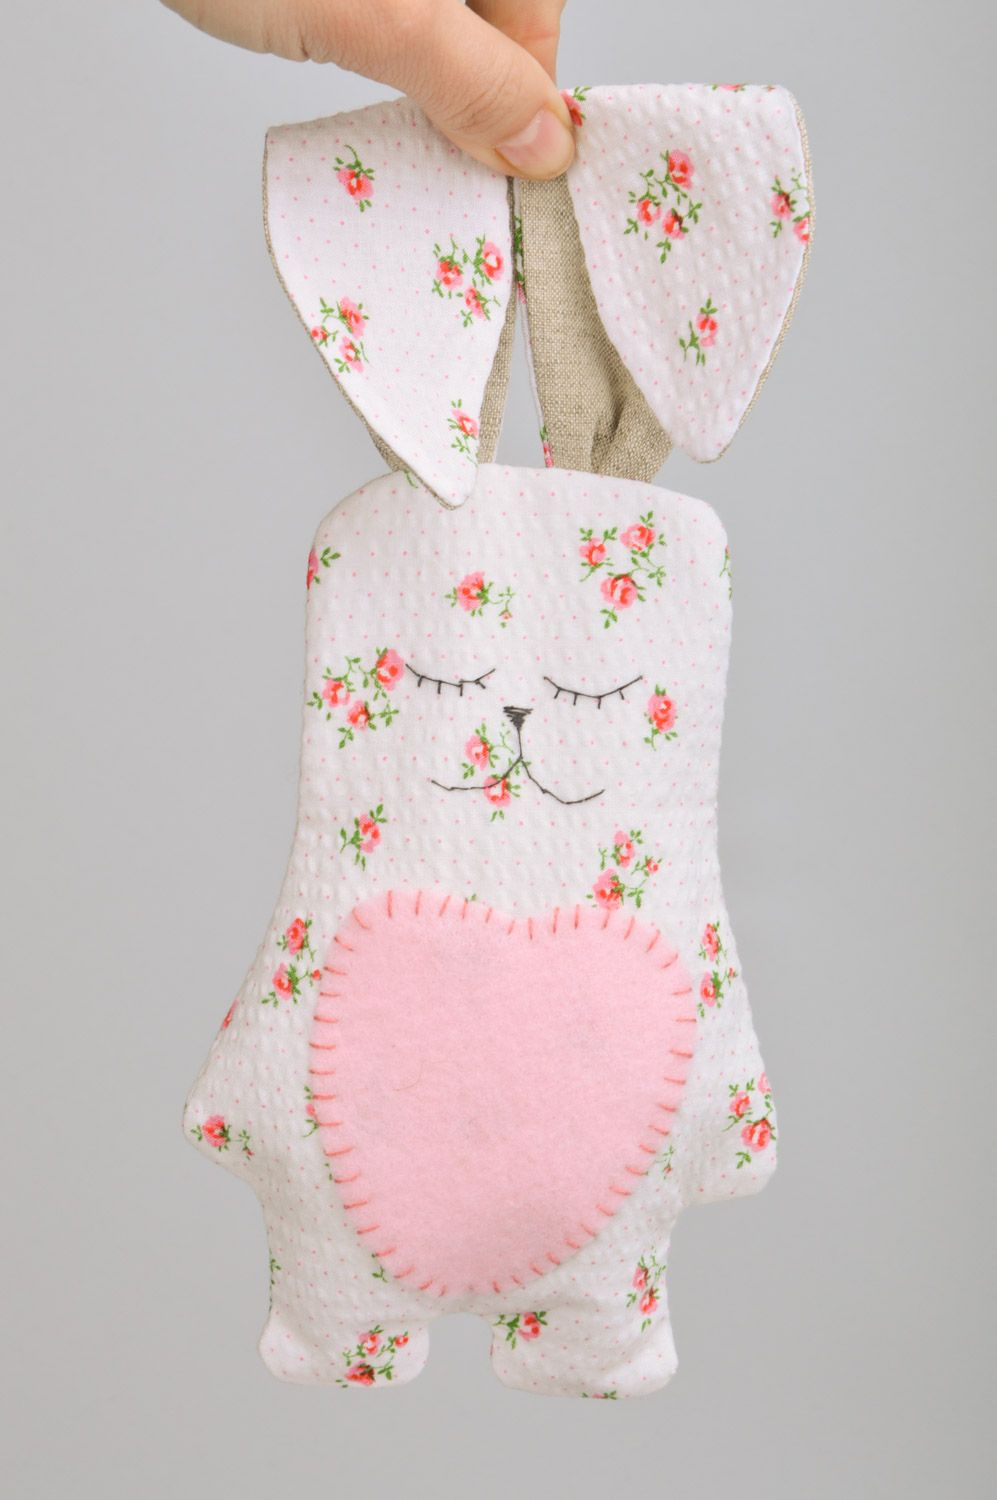 Handmade soft toy rabbit with long ears sewn of cotton fabric with floral print photo 3